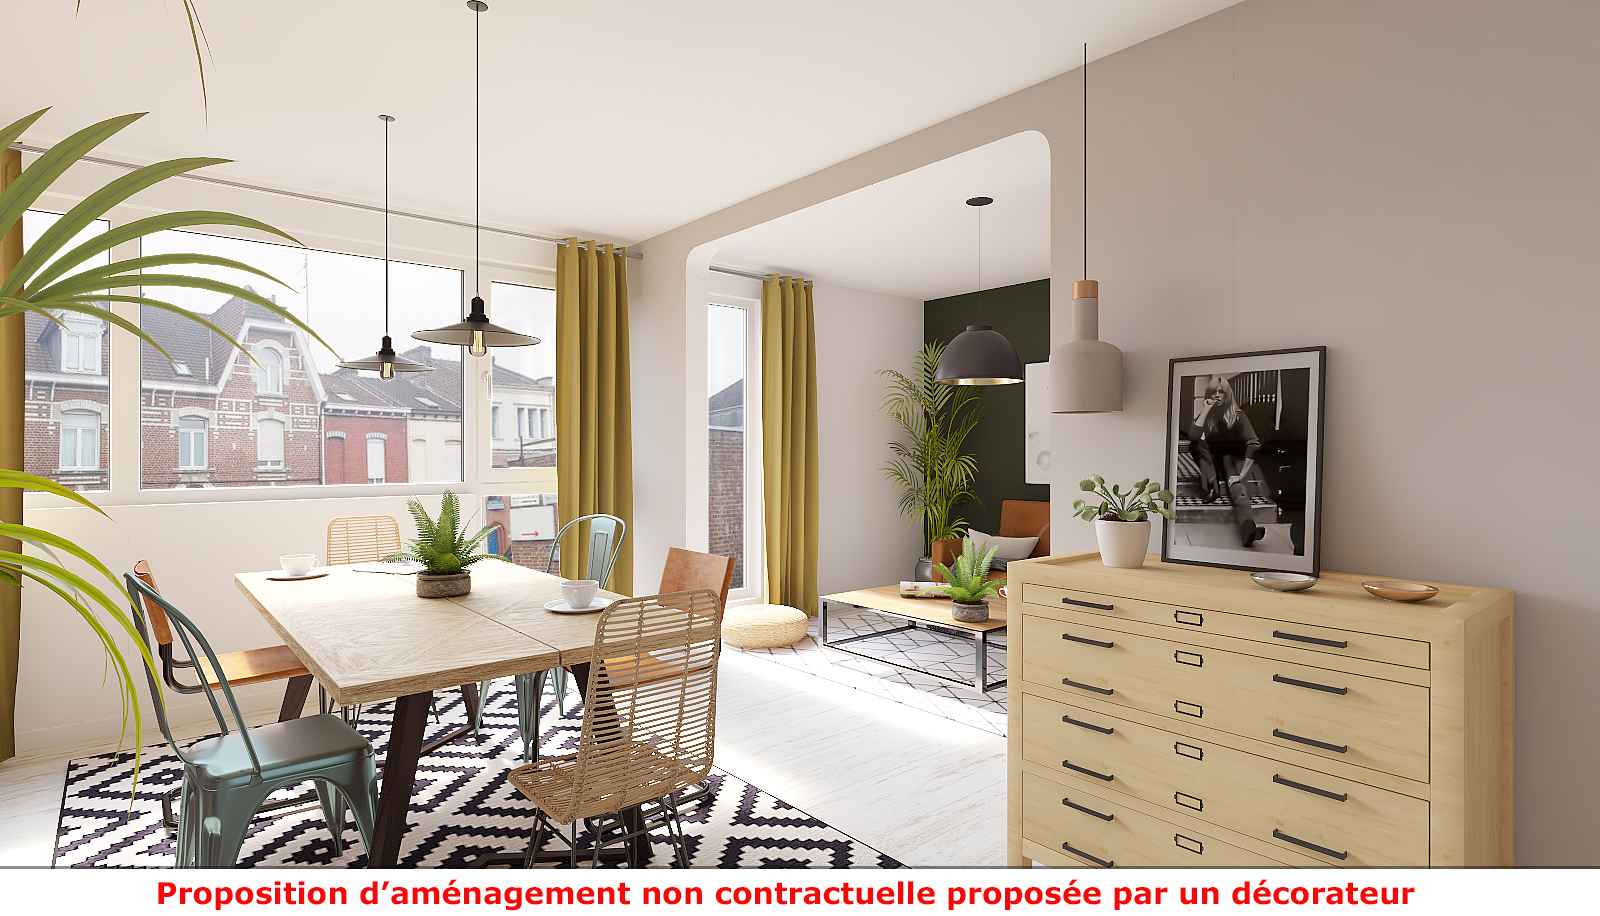 Home staging virtuel 2D par immotio